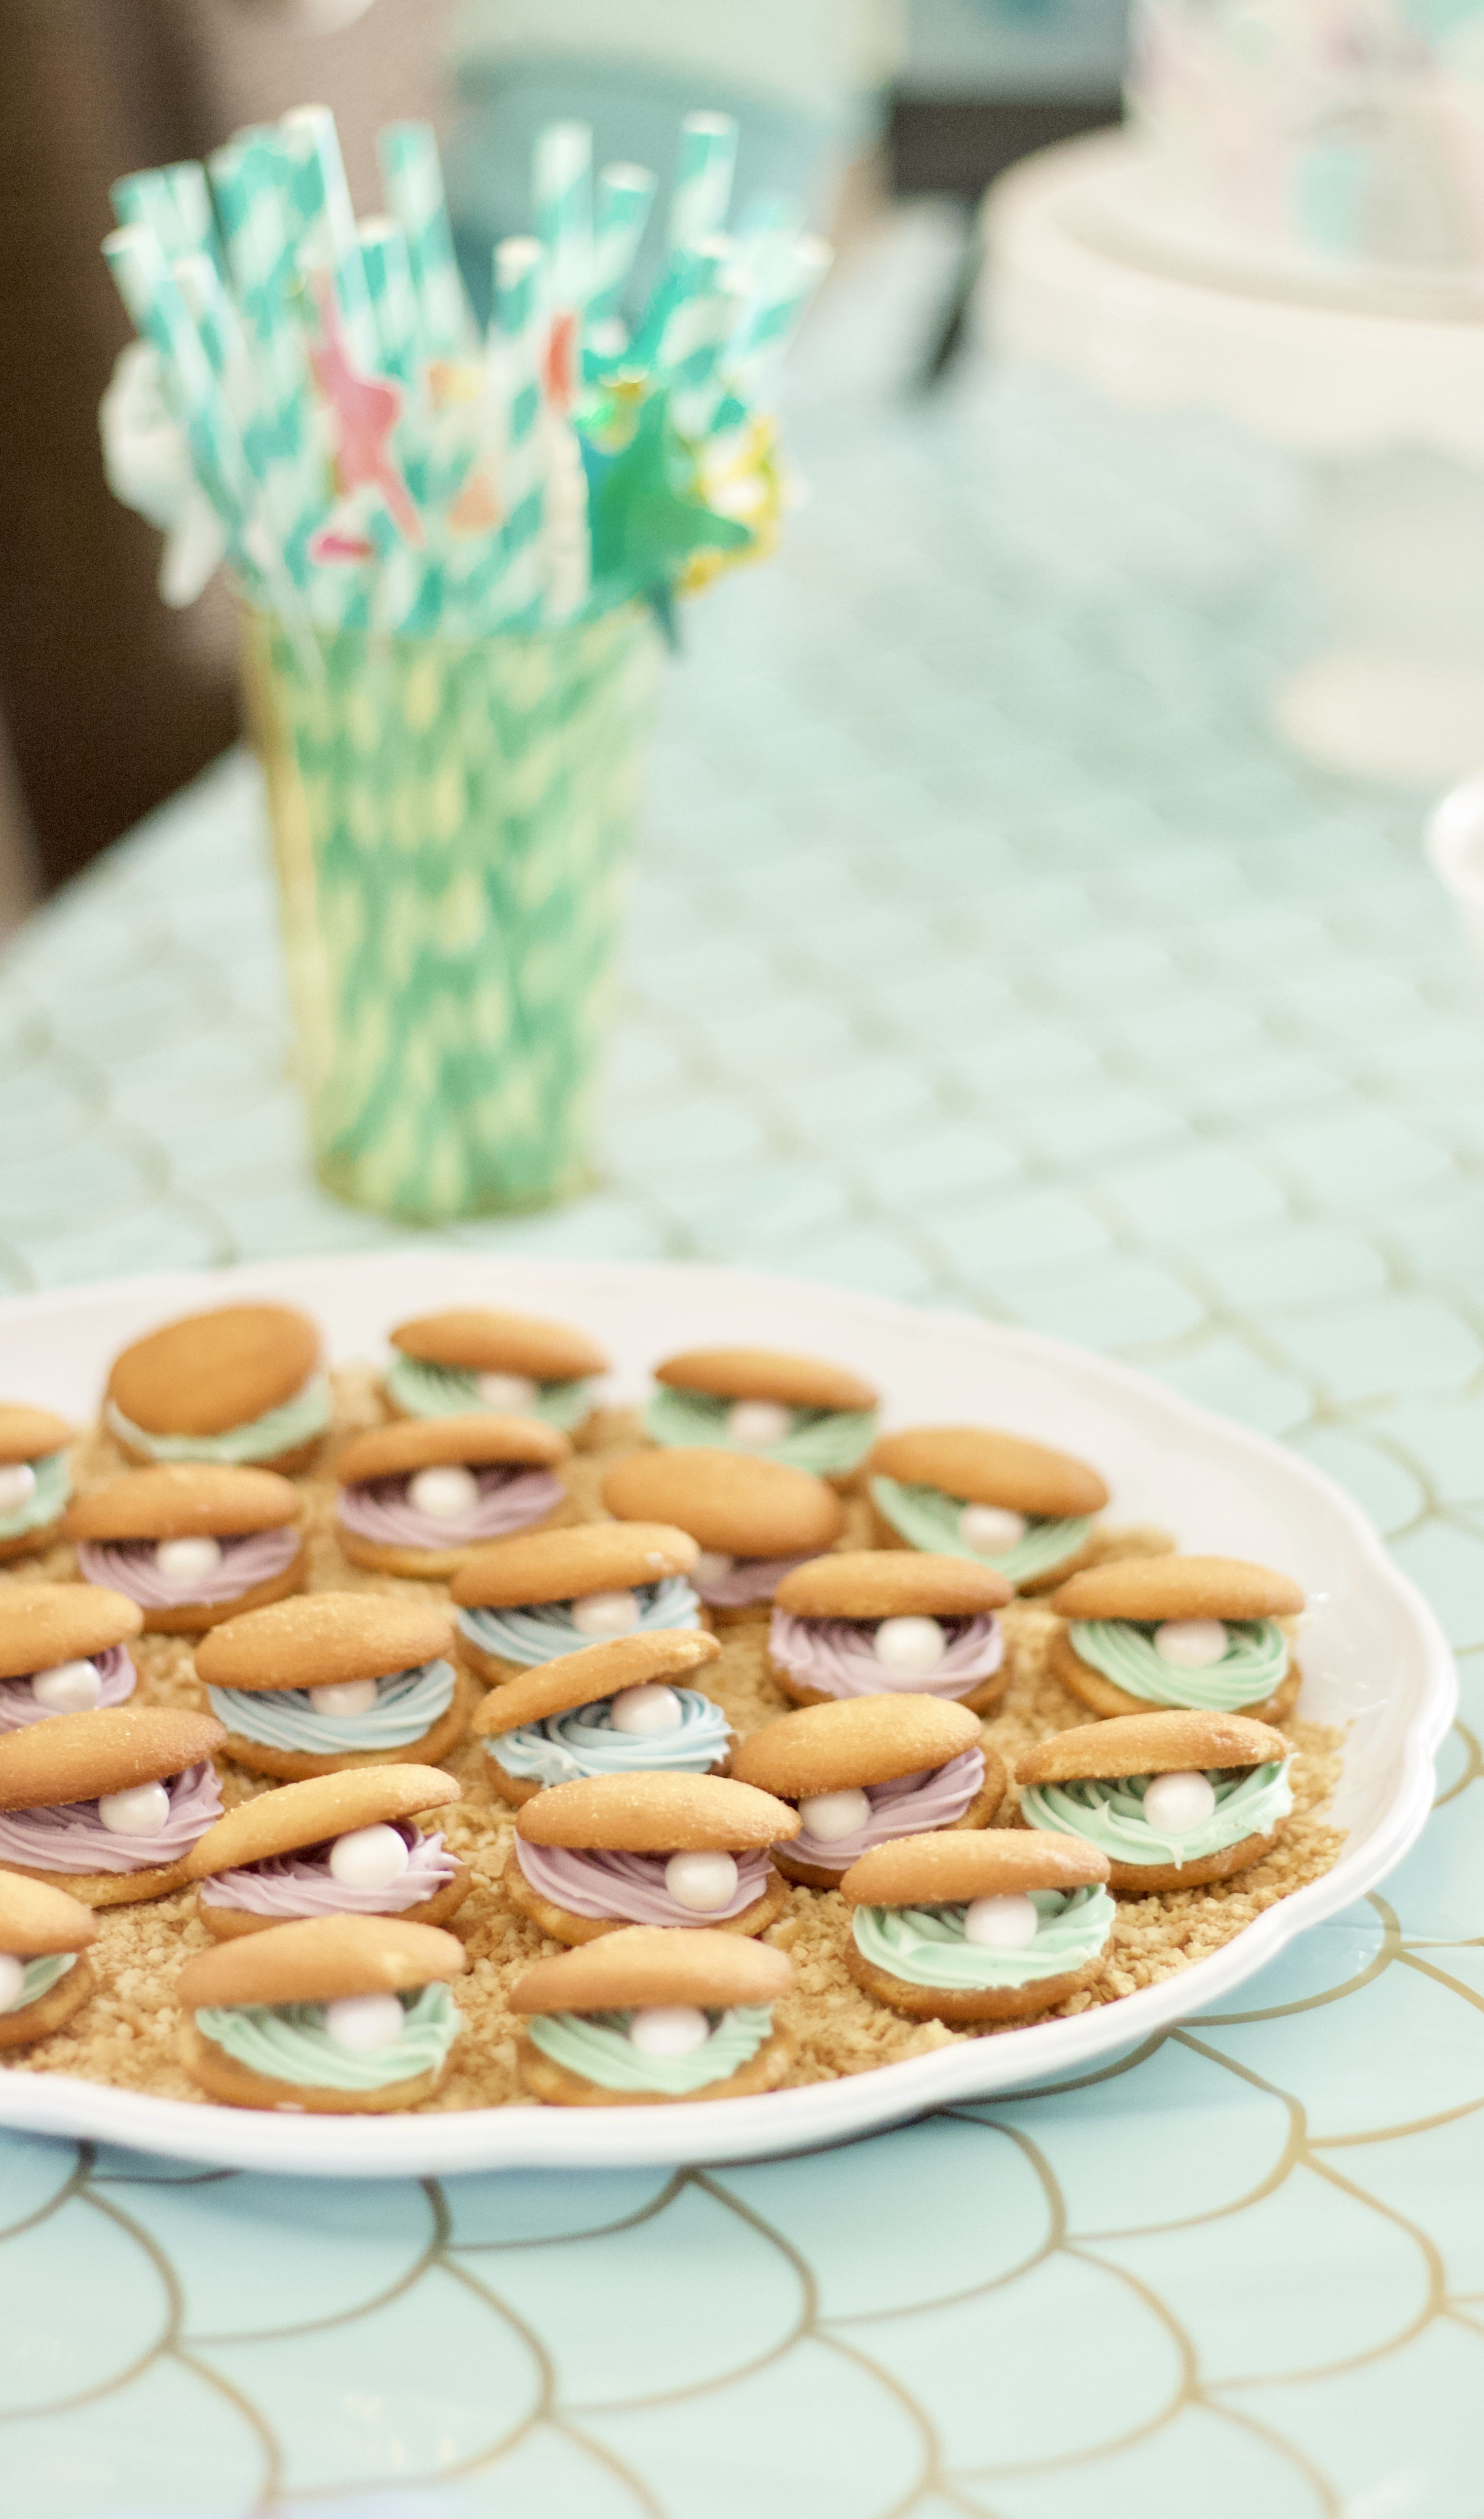 clam shell cookies mermaid party #diy #cookies #mermaidparty #birthdayparty